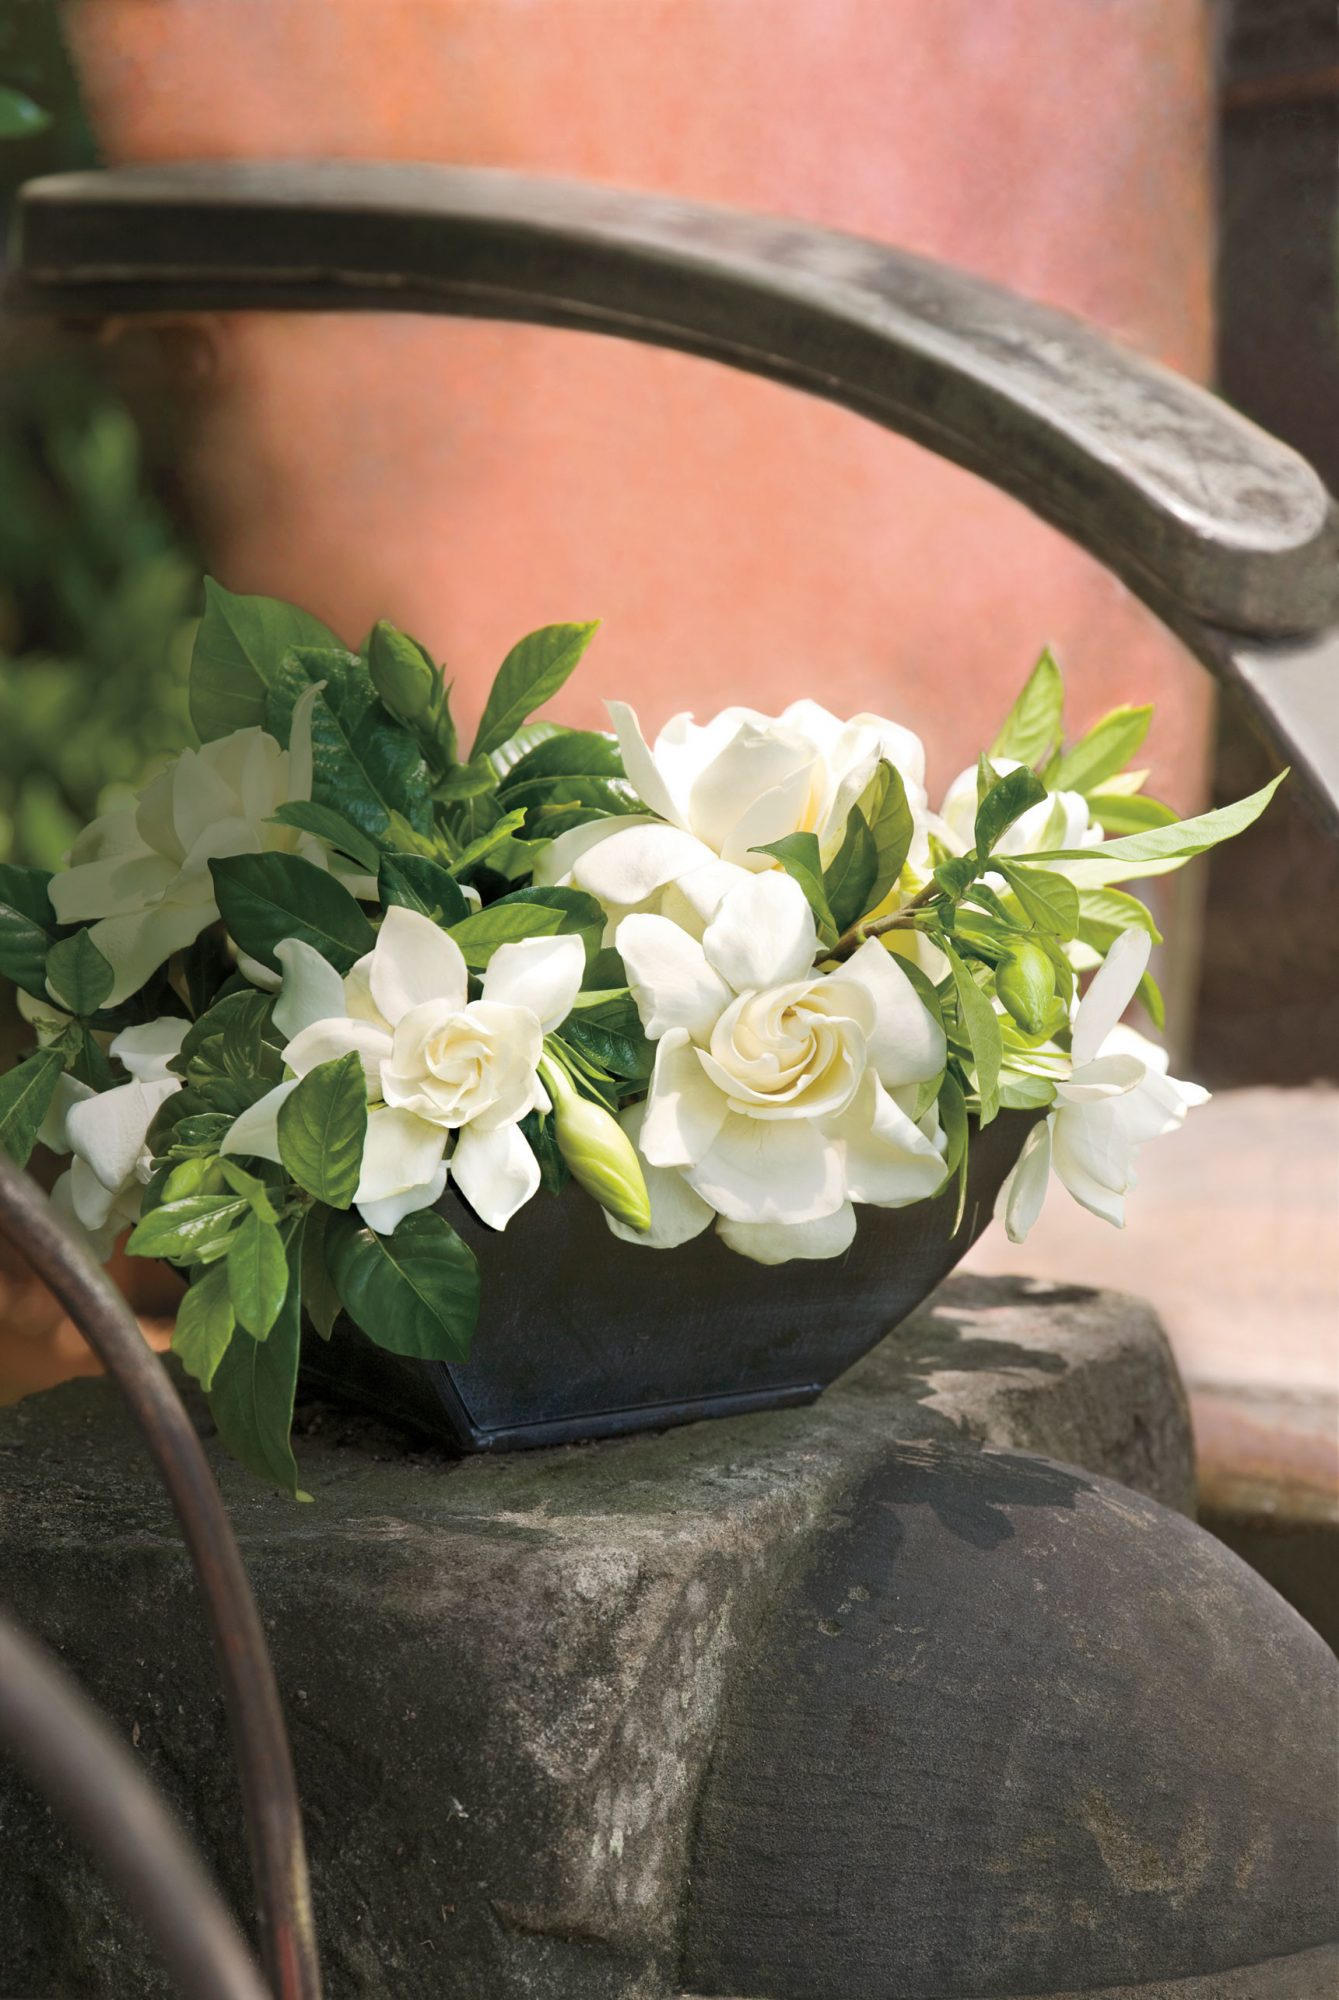 Go Ahead, Plant Those Gardenias - Southern Living